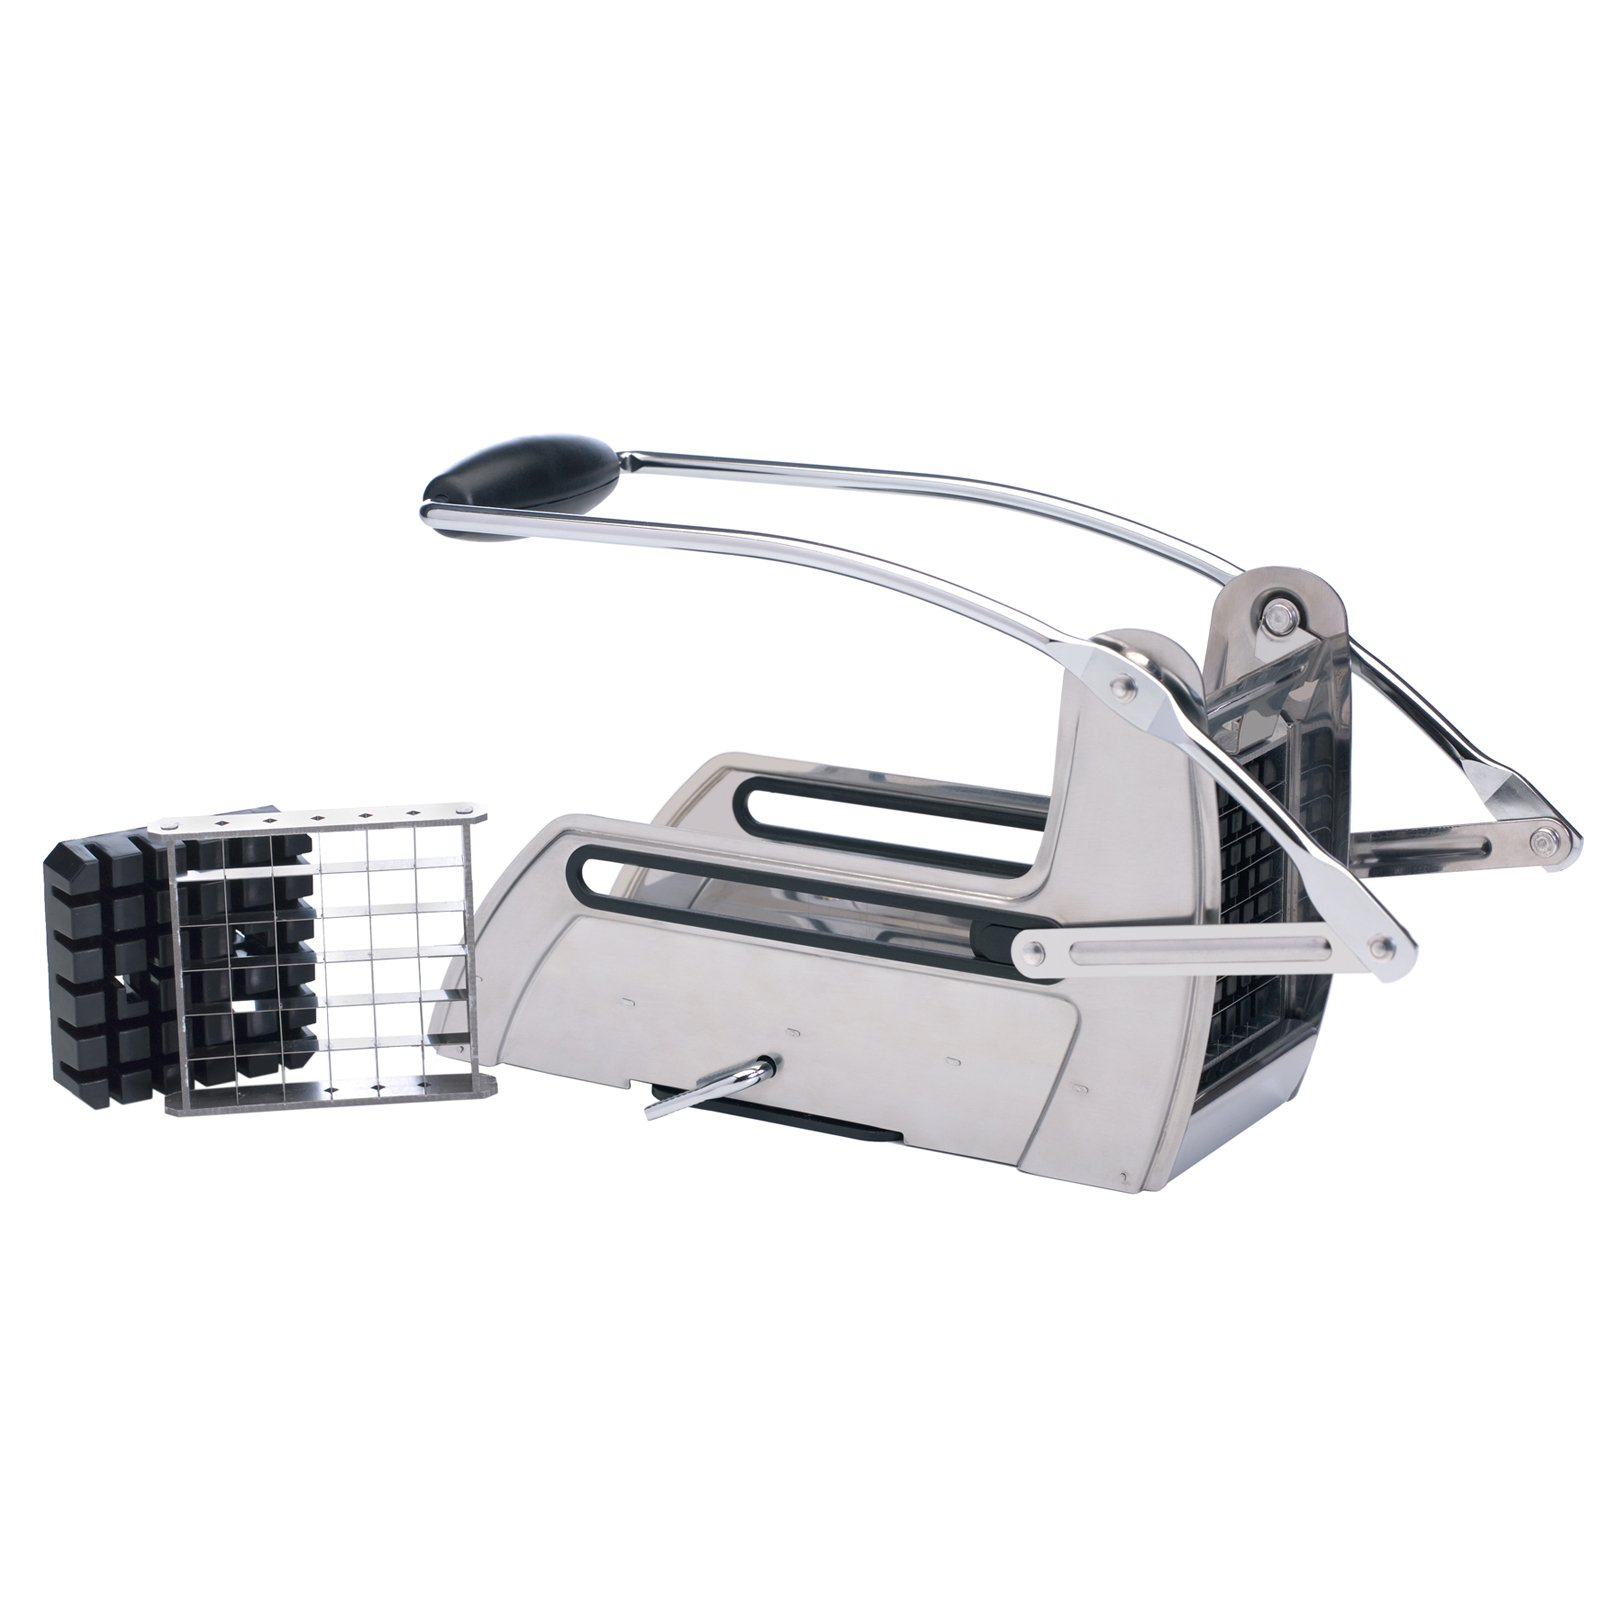 Progressive Housewares GPC-3665 Deluxe Potato Cutter